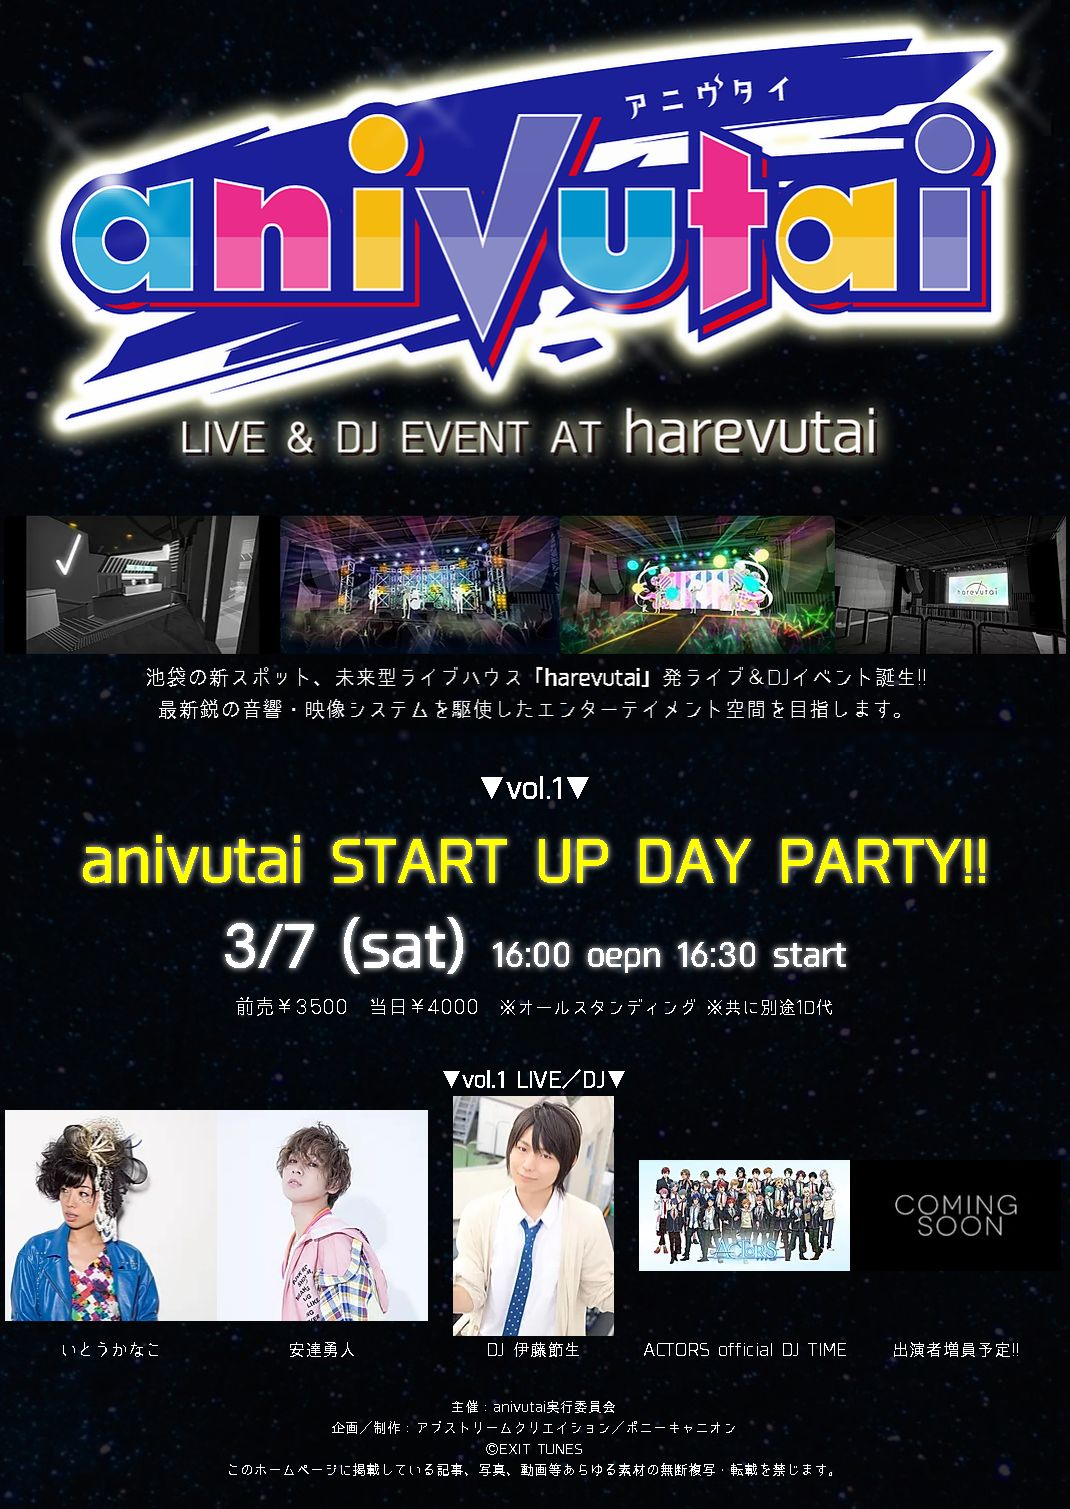 anivutai START UP DAY PARTY!!